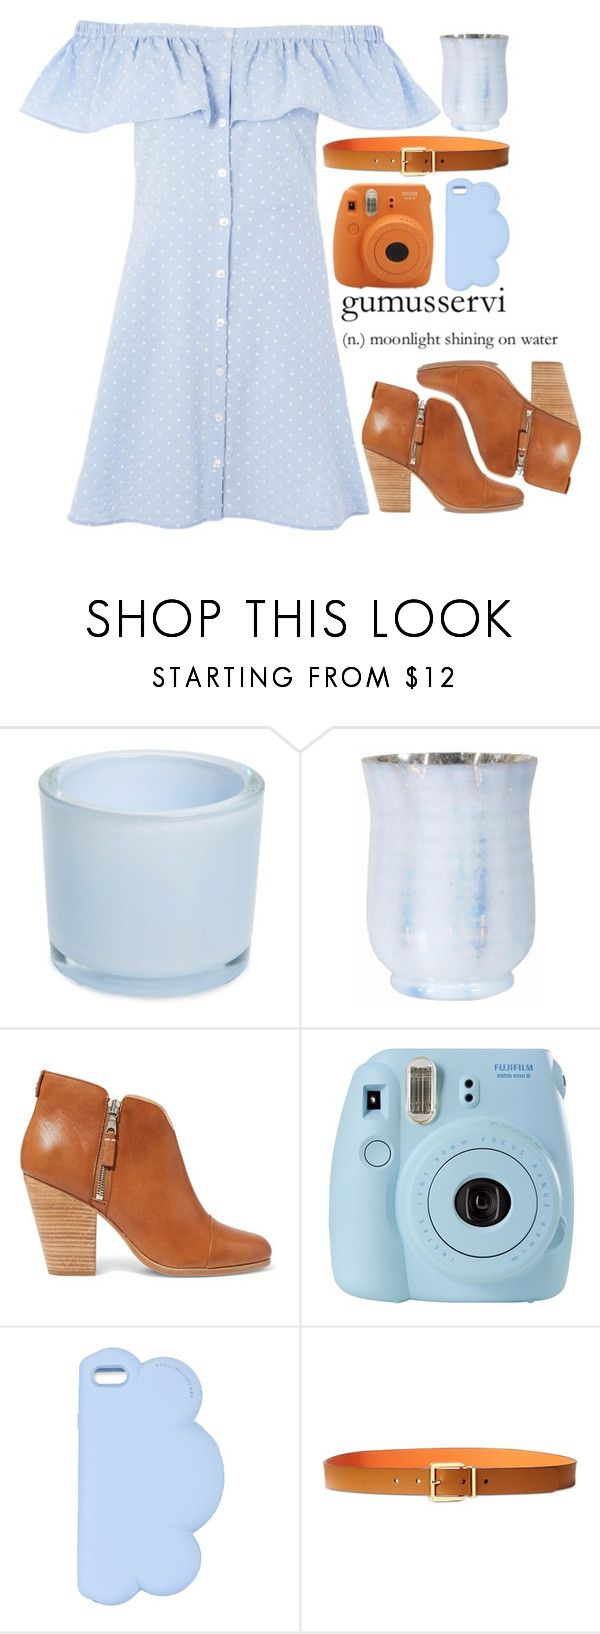 """""""Opposite Colors Tag"""" by gabby23-2 ❤ liked on Polyvore featuring Design Imports, rag & bone, Fujifilm, STELLA McCARTNEY, Lauren Ralph Lauren and Topshop"""